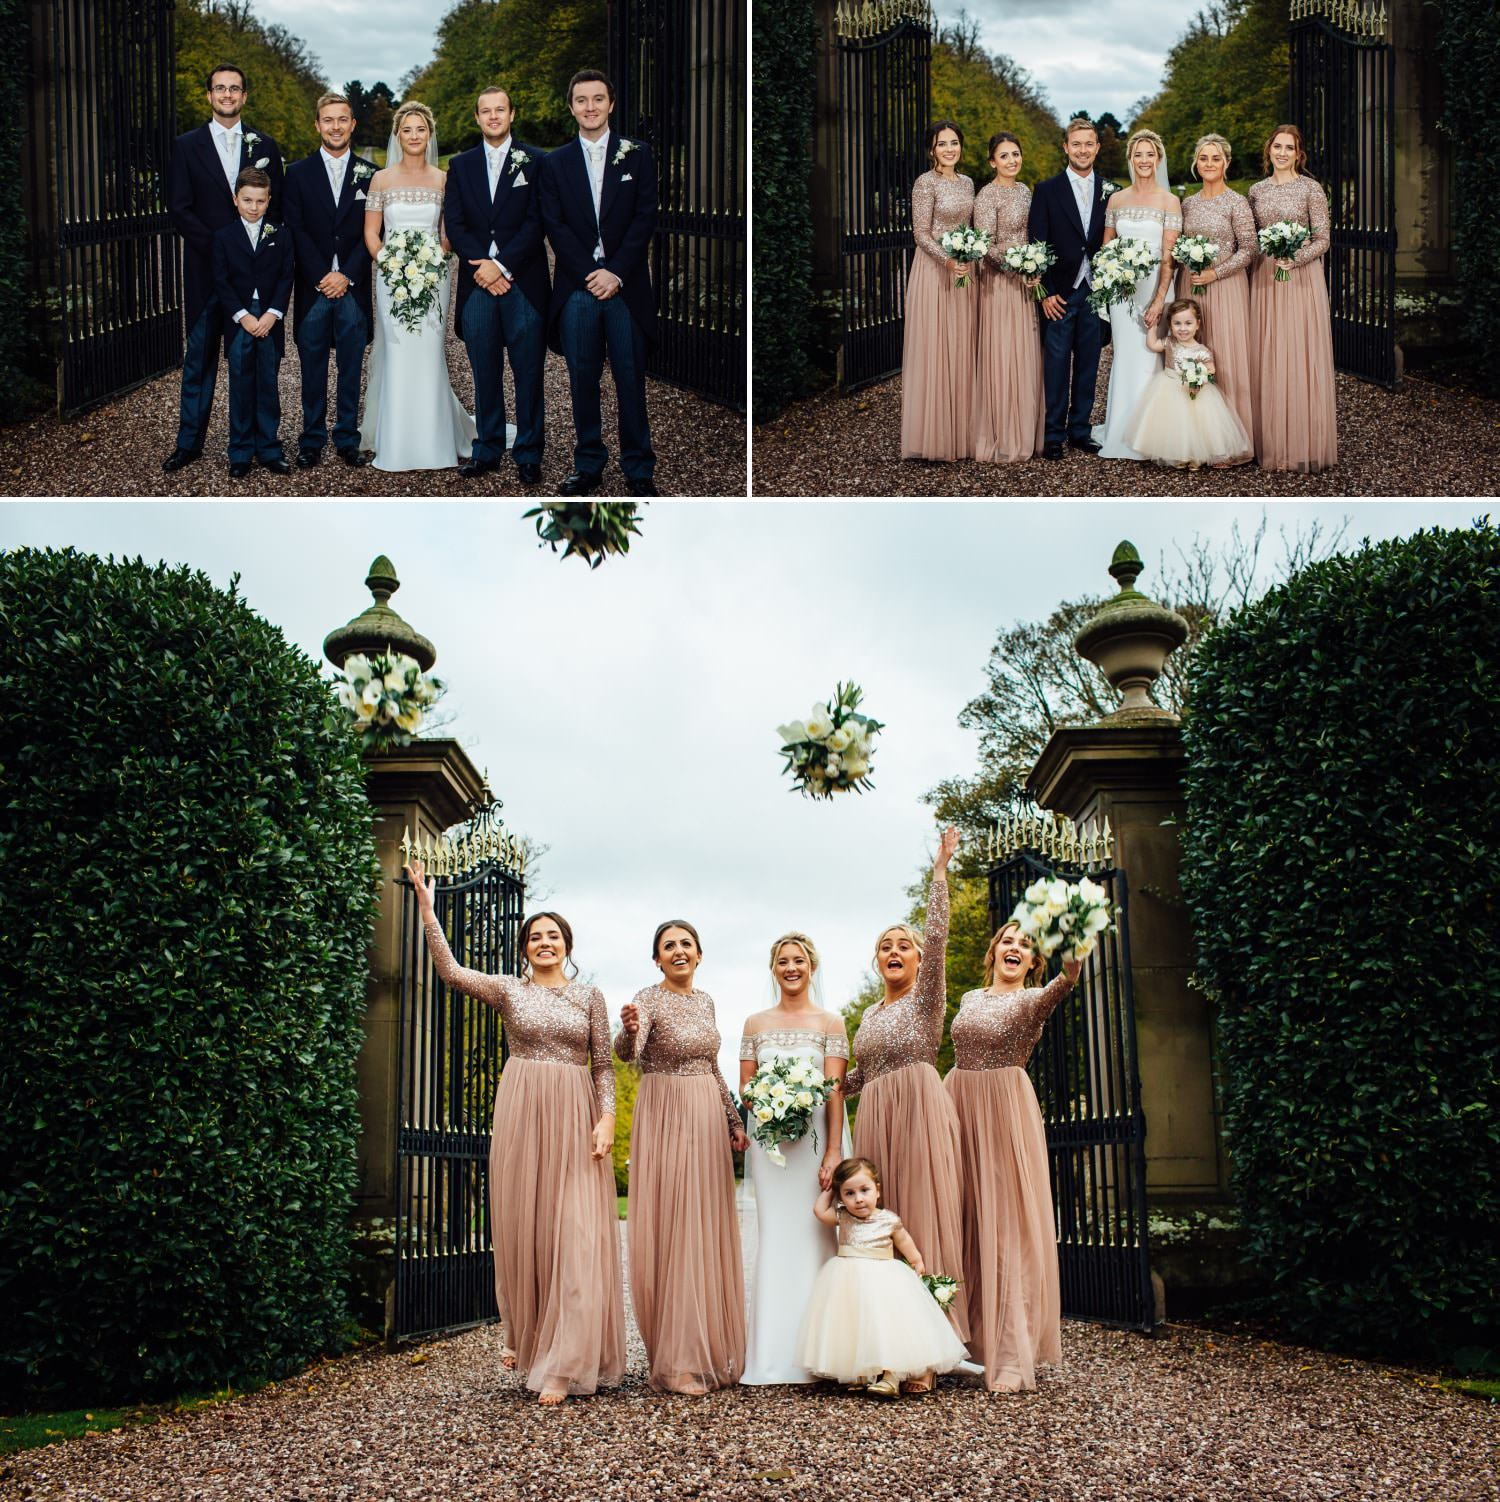 wedding photography at the gates of soughton hall